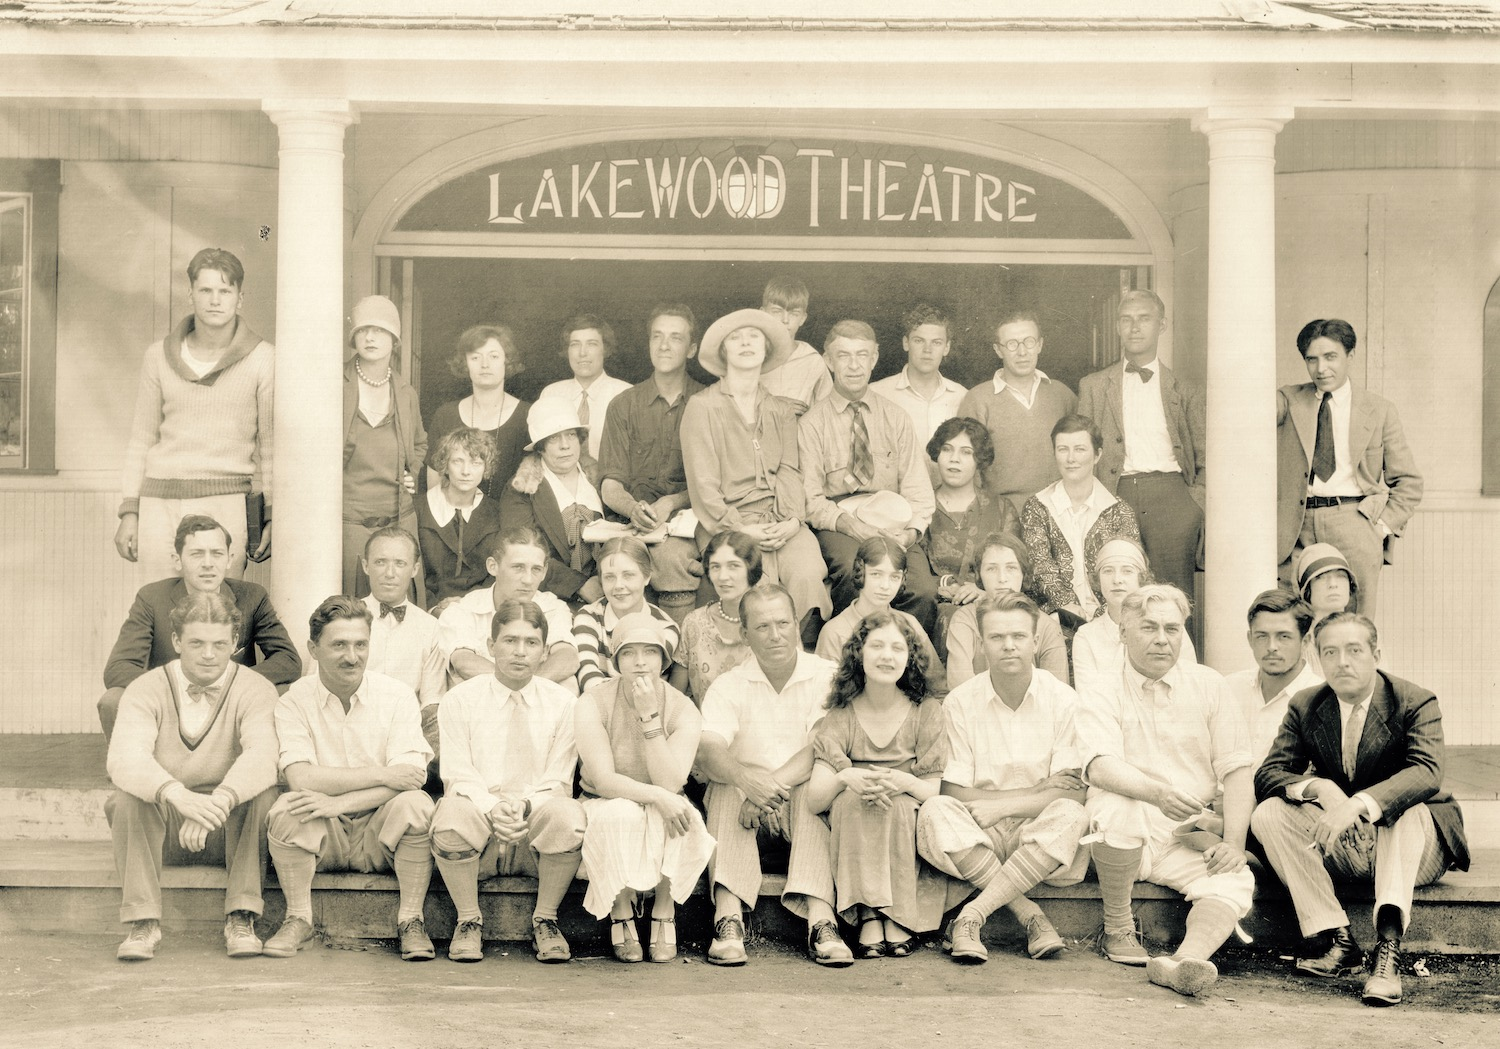 Warren Hymer (standing third row, left, leaning against the pillar) with the 1926 Lakewood Stock Company. Note the book in Warren's left hand; he would have been a 20-year-old Yale student, summering with his family at Lakewood when this photograph was taken. Warren's father, playwright John Bard Hymer, is seated fifth from the left in the front row.